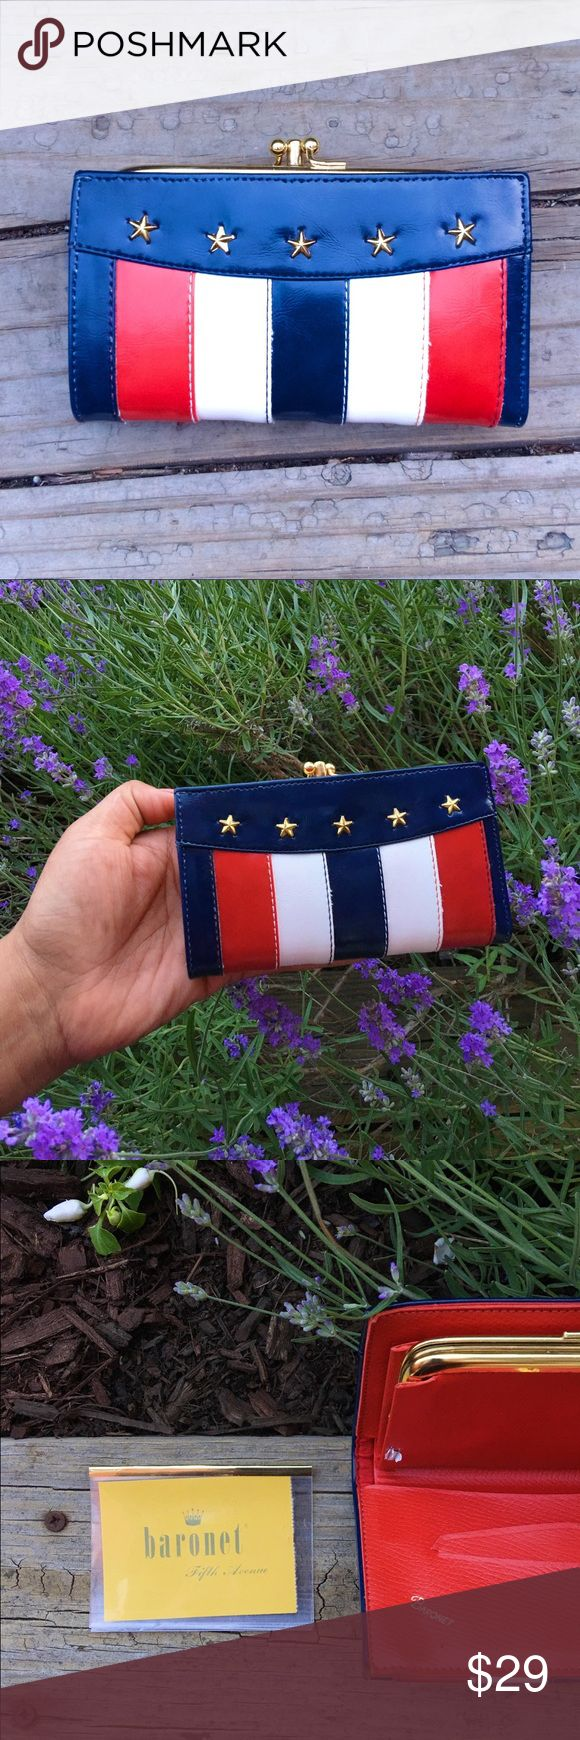 """New Baronet Stripes Stars leather Wallet Coin Bag BNWT Baronet Stars & Stripes Red White & Blue Wallet   This beautiful statement wallet is a well crafted piece with a coin compartment, space for your bills and receipts. Big enough to accommodate   * Red Leather with silver accents  * Brand Brand new without tags  * 8.5"""" length x 5.5"""" high leas than 1/4-3/4"""" width   * Zippered   I am 🙊 ⭐️⭐️⭐️⭐️⭐️ 5-Star rated plus Ship in 48hrs or less 📦! baronet Bags Wallets"""